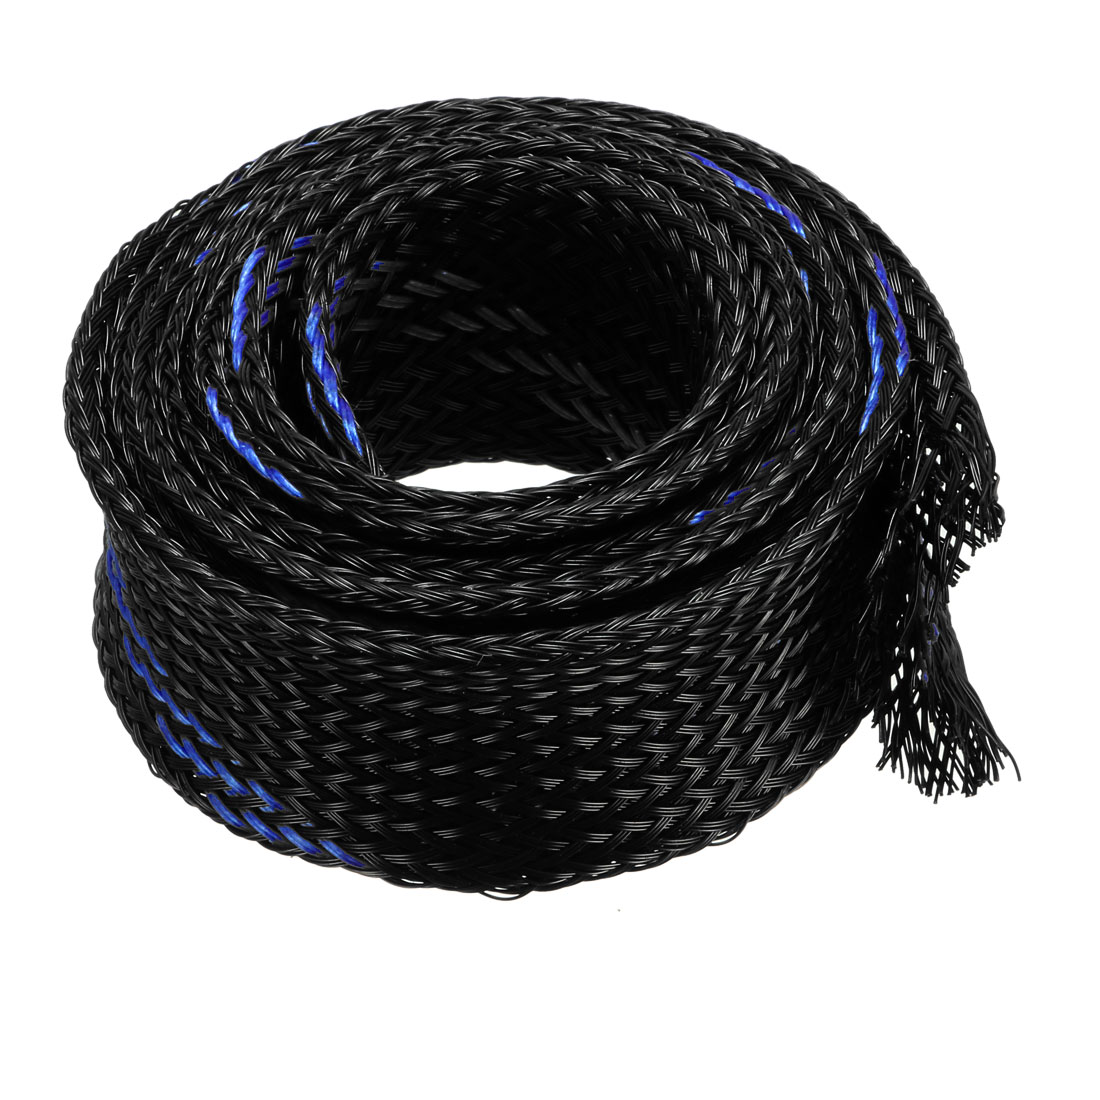 25mm Dia Tight Braided PET Expandable Sleeving Cable Wrap Sheath Black Blue 1M Length